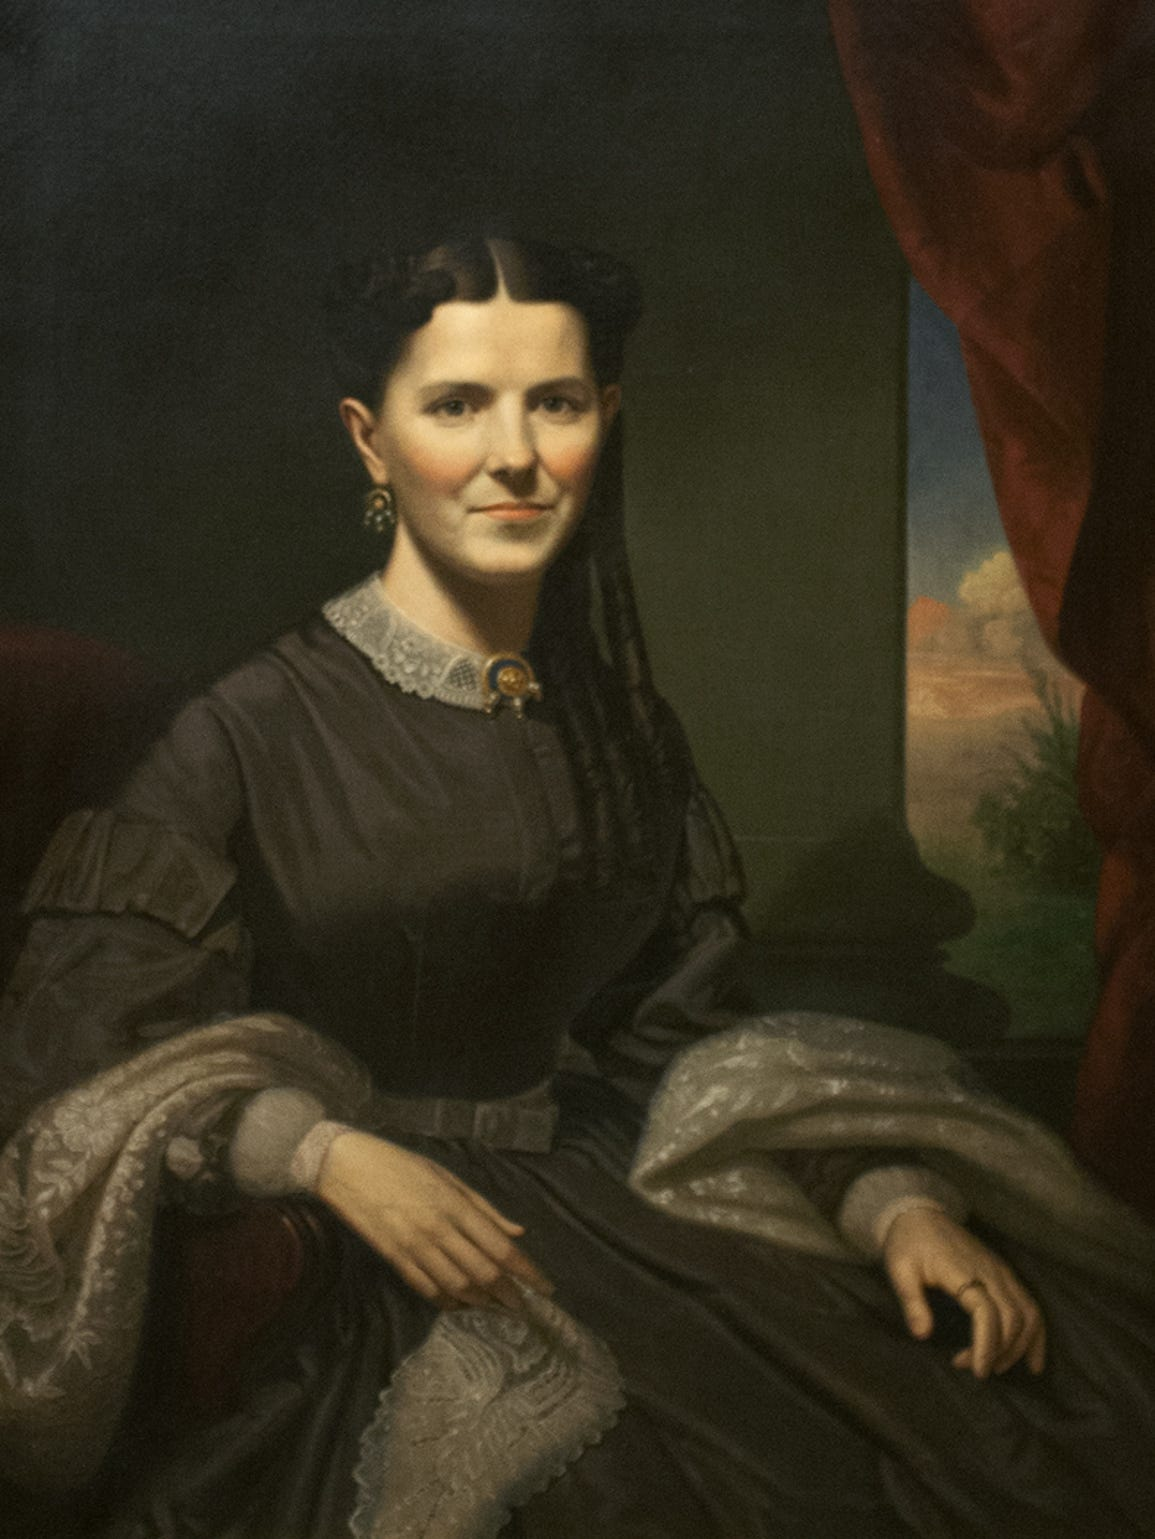 In 2014, Springfield Art Museum launched an alternate-reality